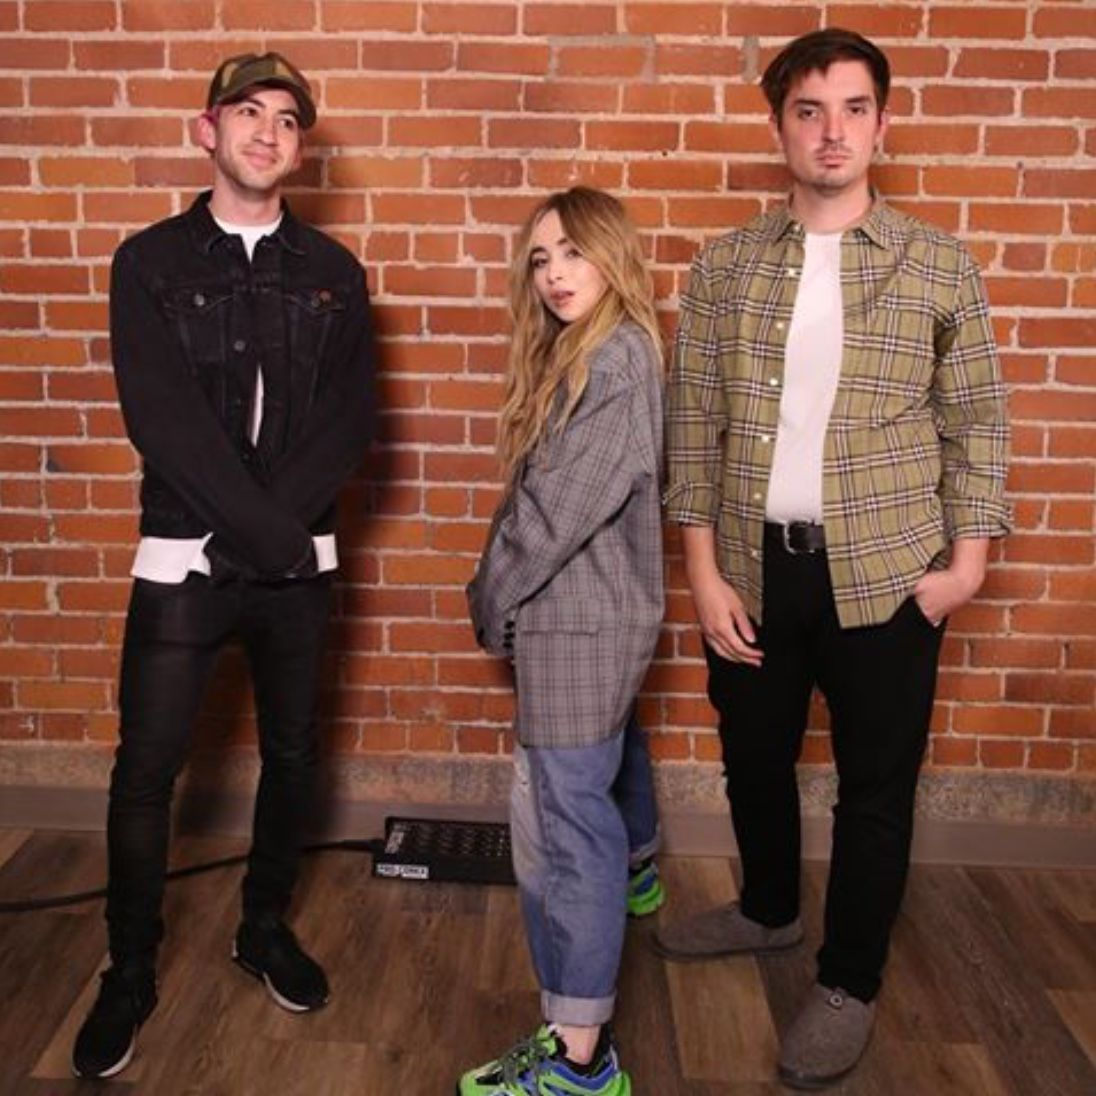 2019 Sabrina Carpenter Interview On The Zach Sang Show In Los Angeles Ca With Radio Personalities Dan Zolo Sabrina Carpenter Outfits Sabrina Carpenter Sabrina